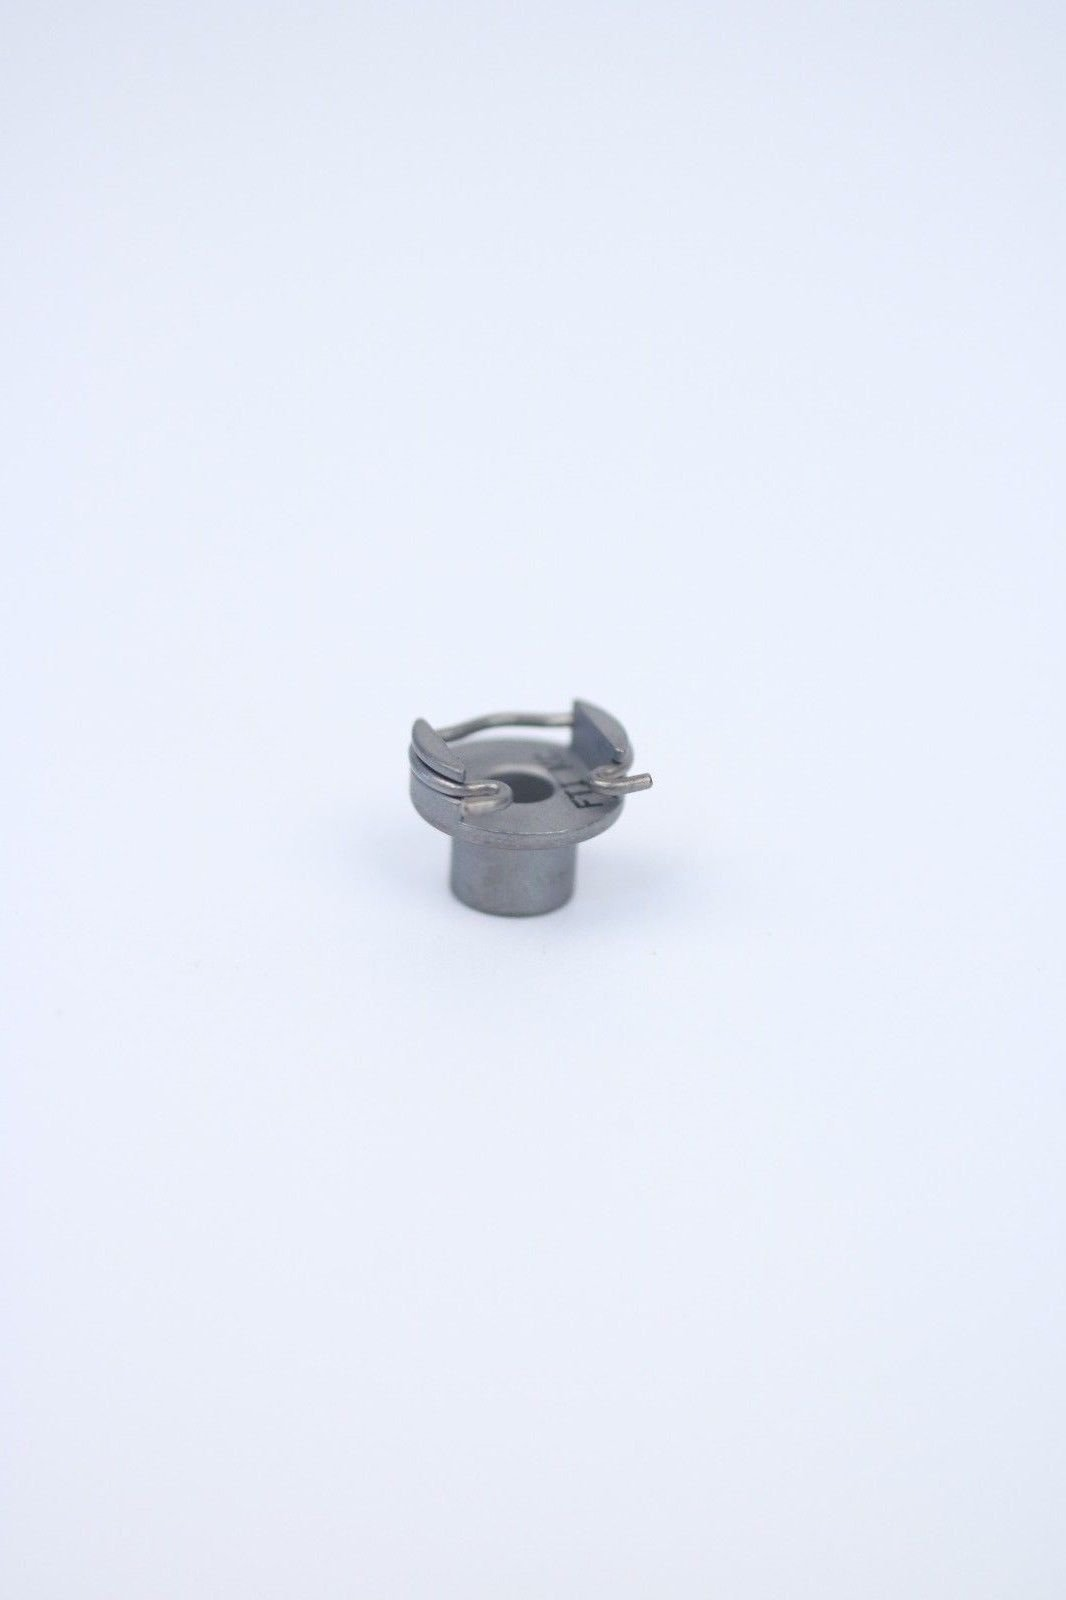 Fatigue Technology Int. Retainer Seal Rivetless Nut Plate Steel Aircraft F-15 by Fatigue Technology International (Image #7)